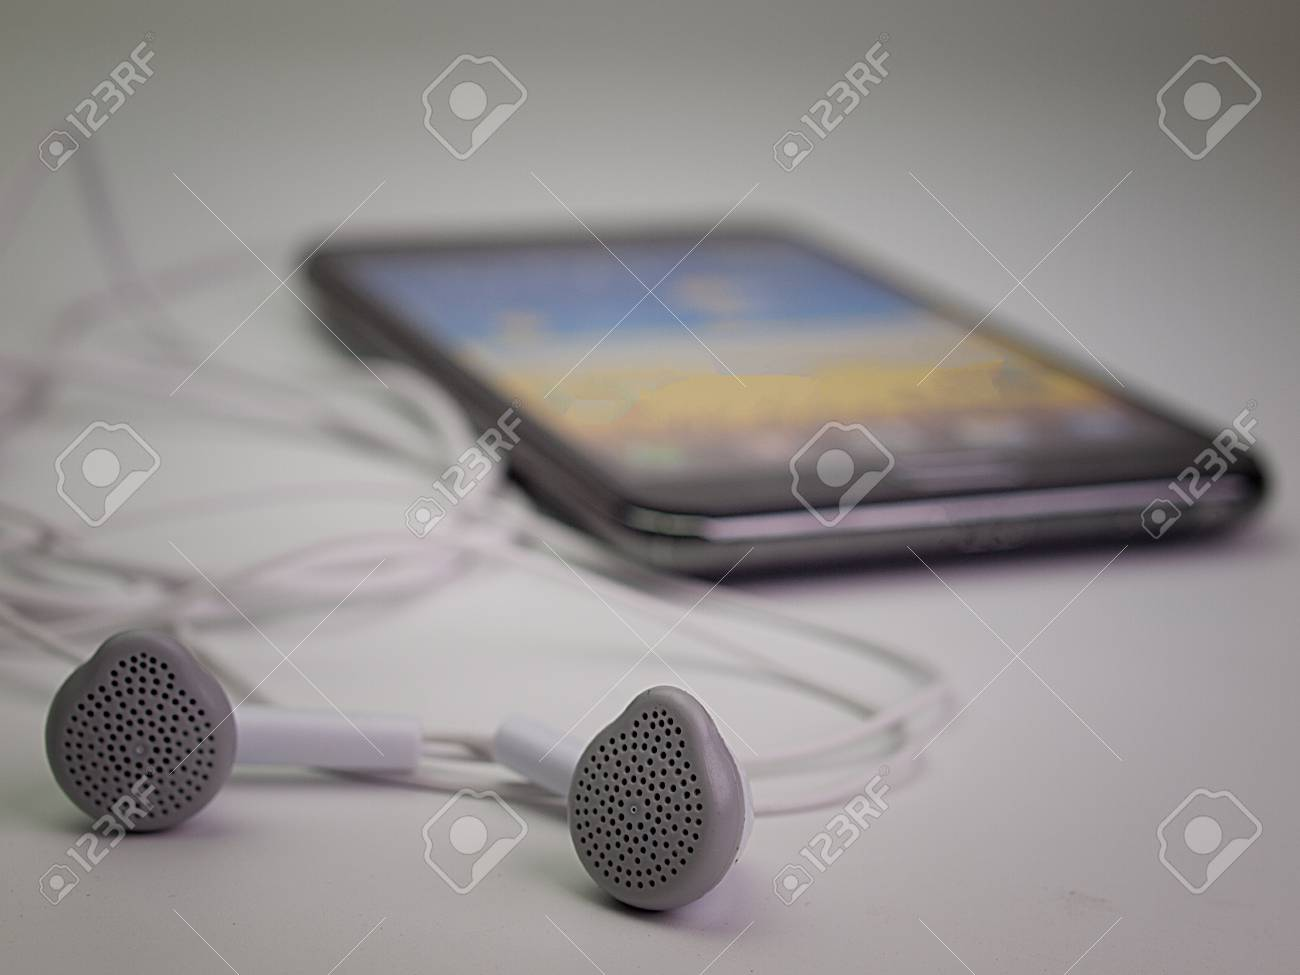 Close Up Mobile Phone Headset Placed On A White Background Stock Photo Picture And Royalty Free Image Image 71177033